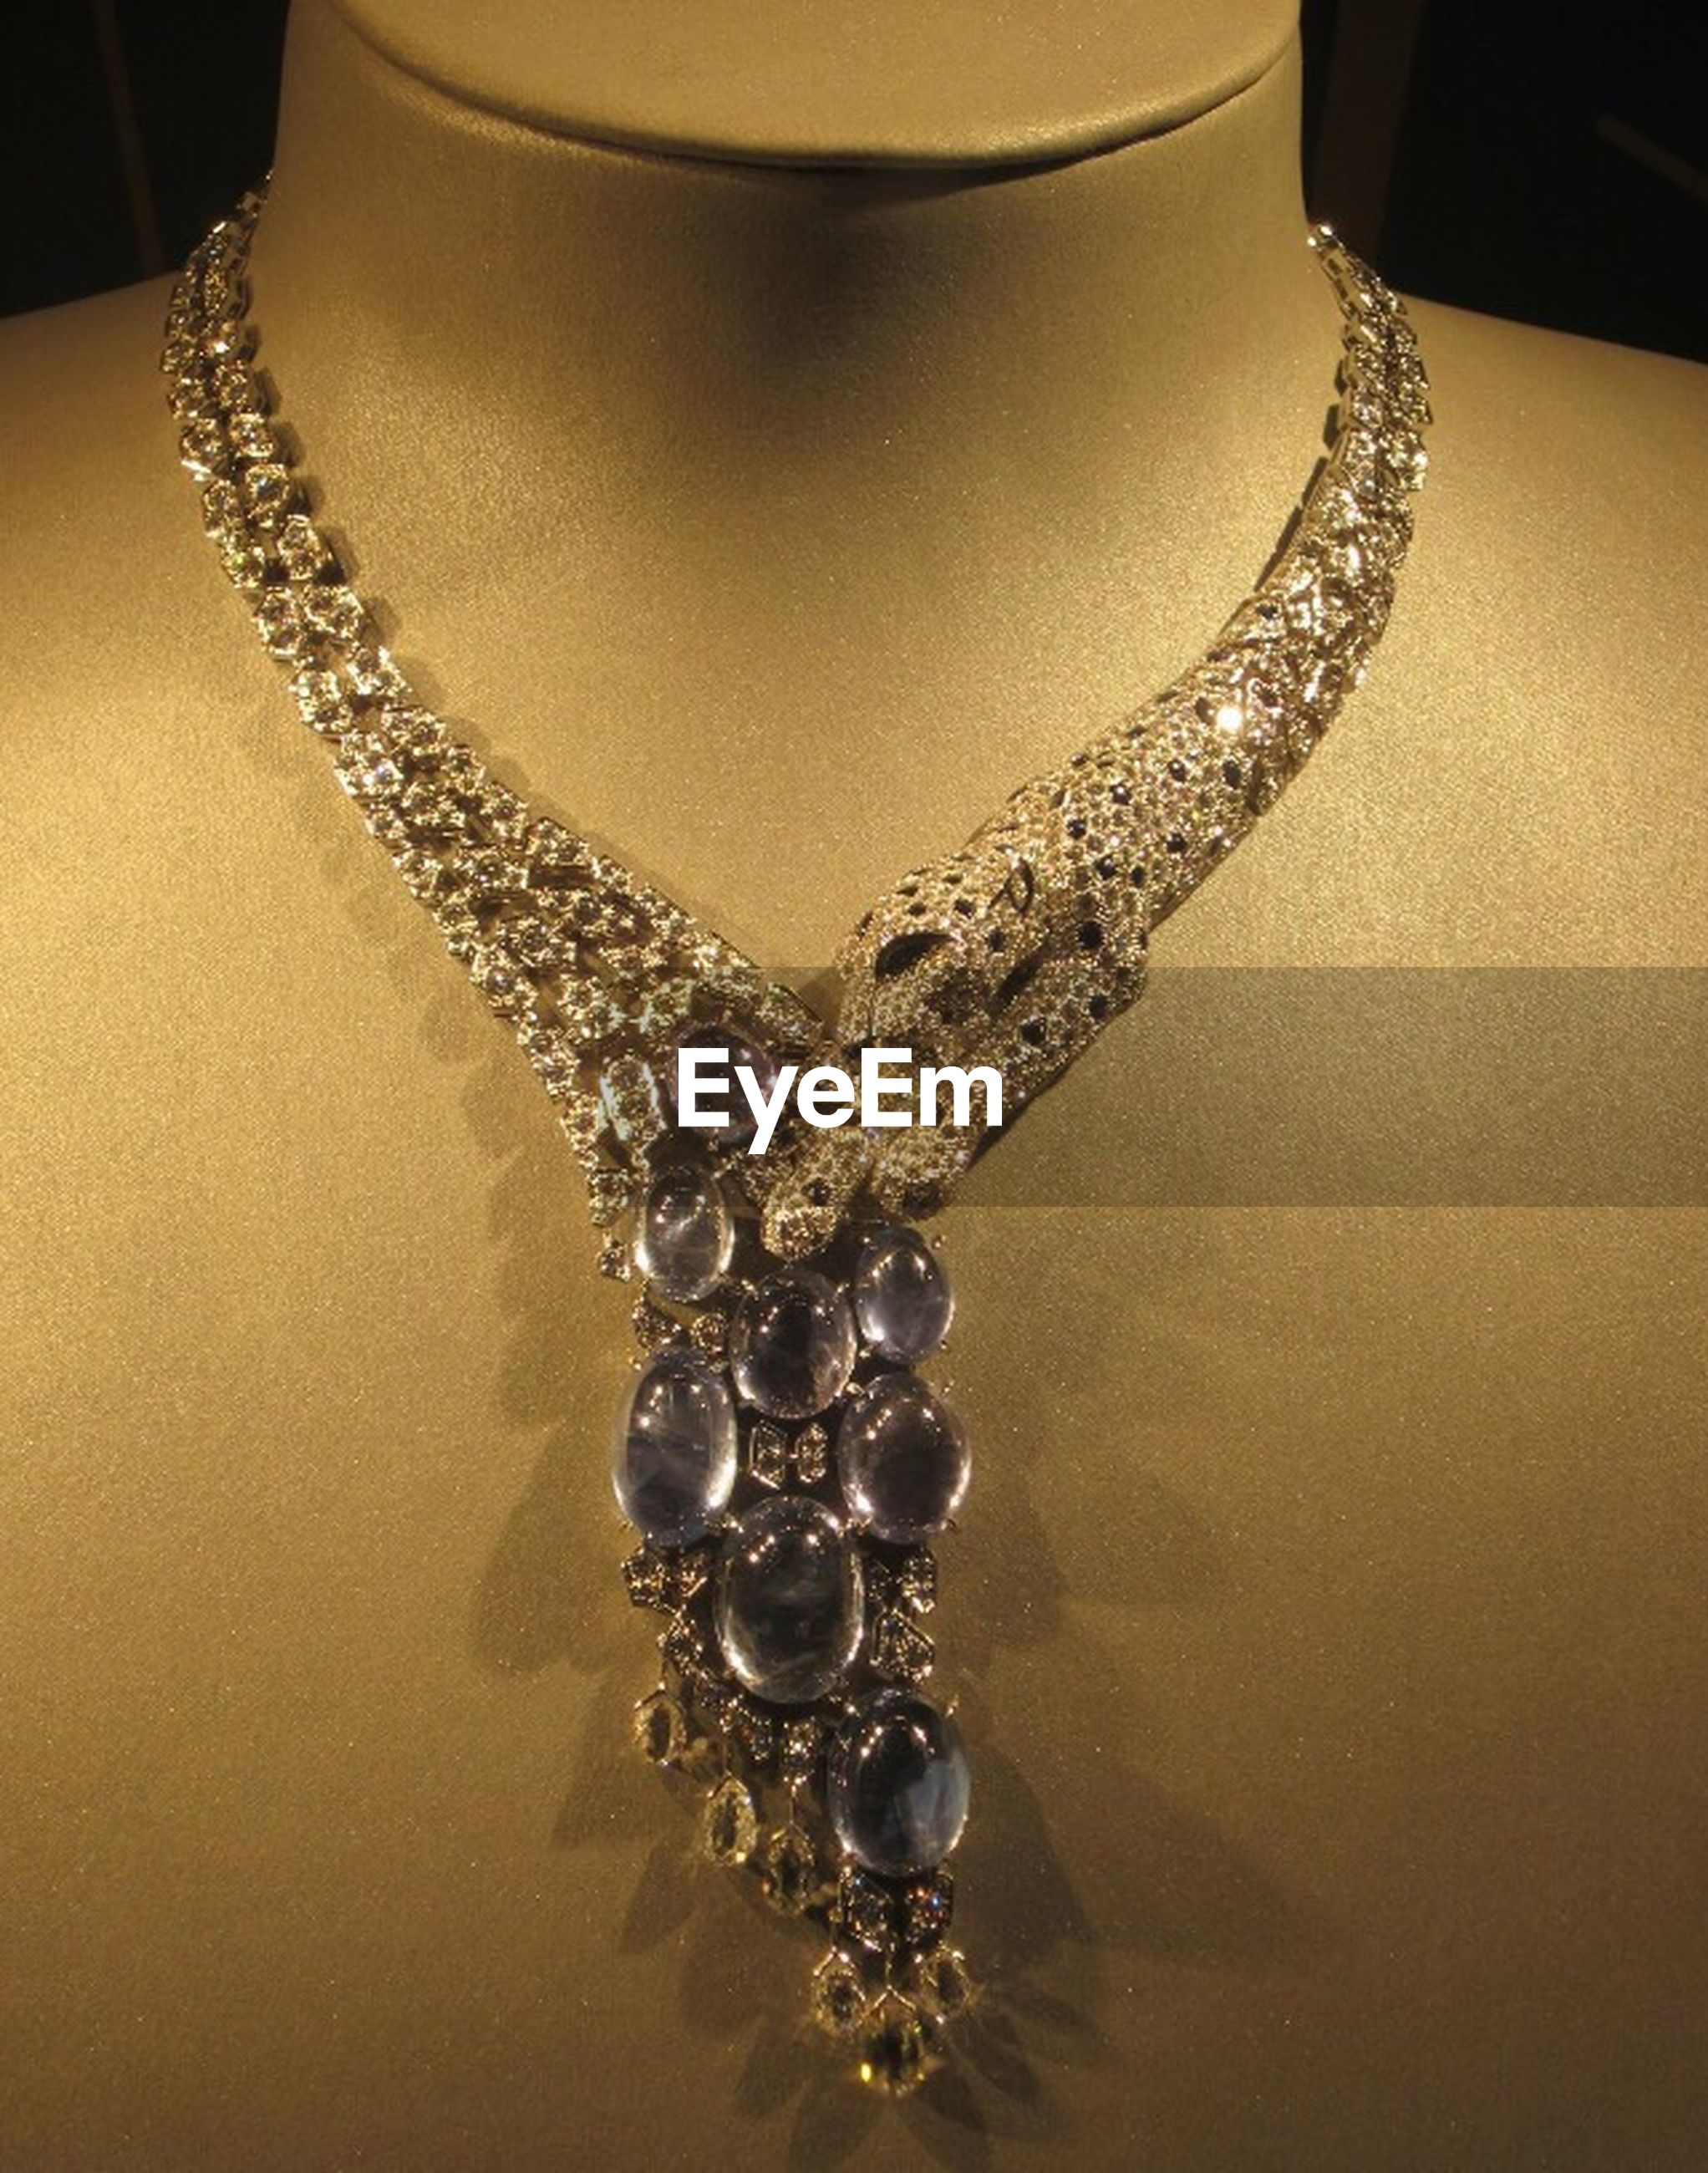 necklace, luxury, jewelry, wealth, elegance, still life, no people, design, gold colored, indoors, close-up, jewelry store, shiny, fashion